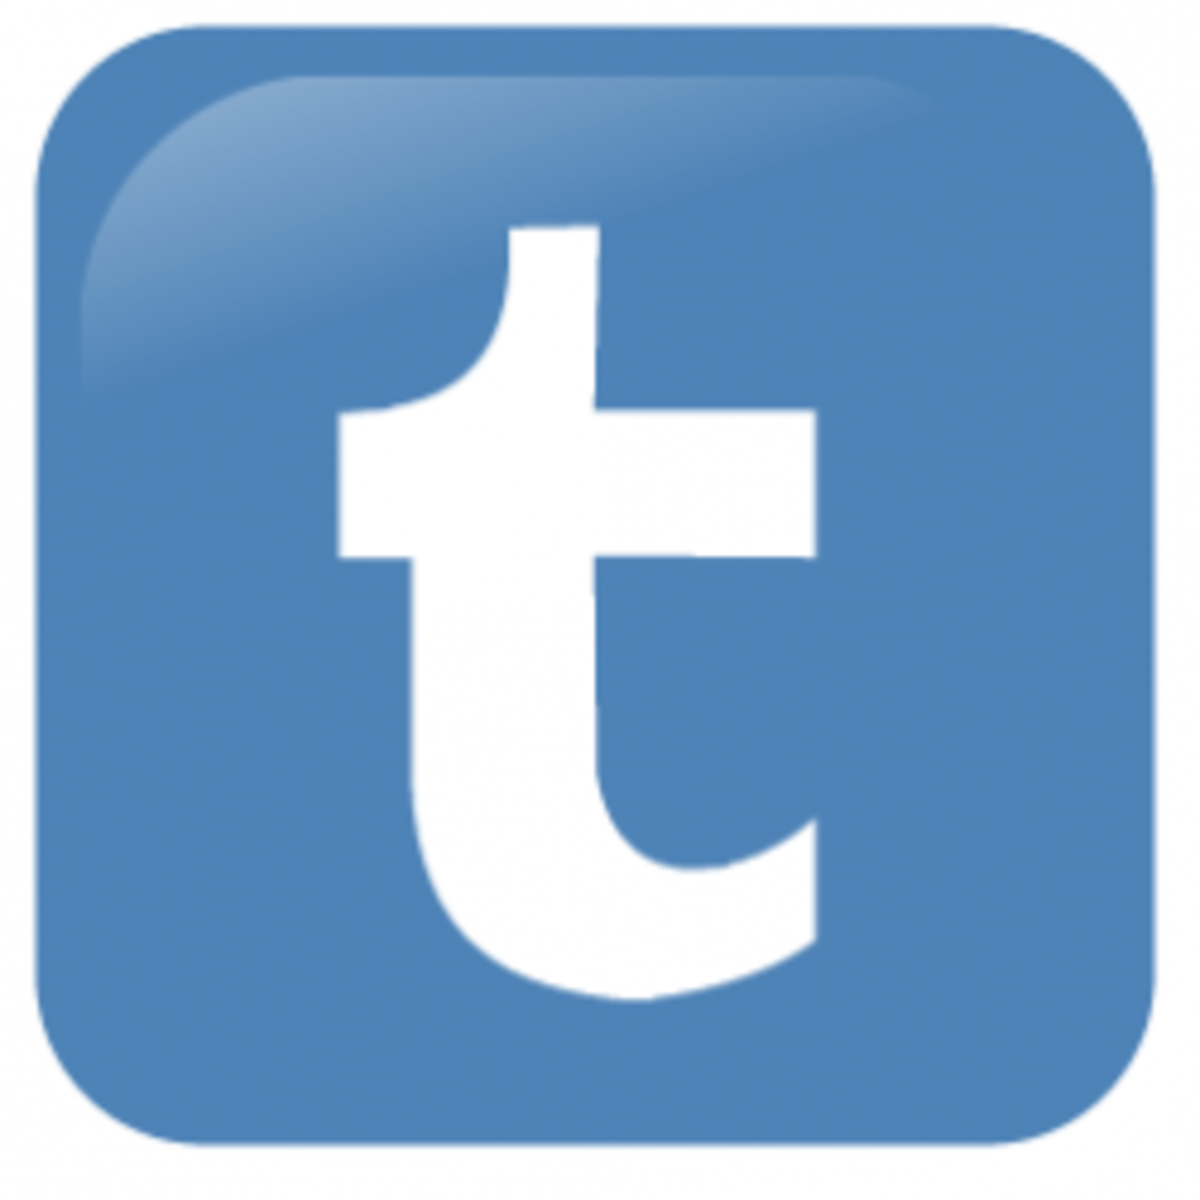 Are there any other microblogging sites that are better than Tumblr?